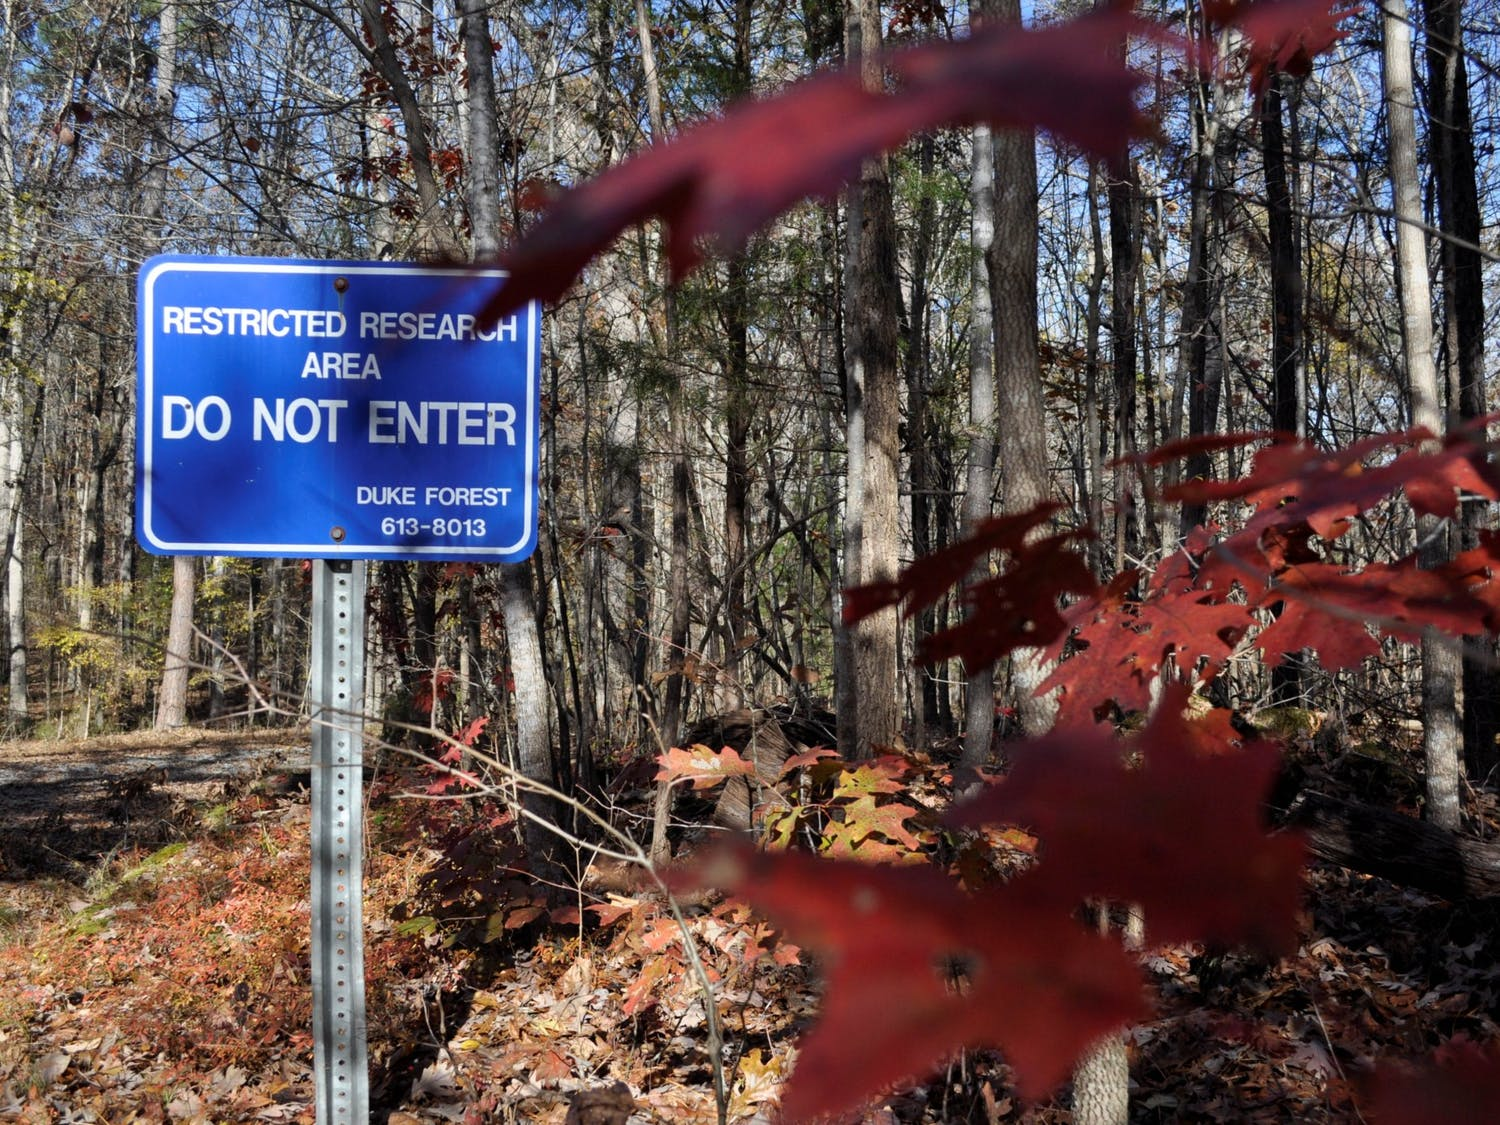 A sign marks the beginning of a restricted research area in Duke Forest located along Eubanks Road on Sunday, Nov. 24, 2019. Plans of developing land near the intersection of Eubanks Road and Old NC 86 raised concerns from residents about how Duke Forest's research and natural sites would be affected.